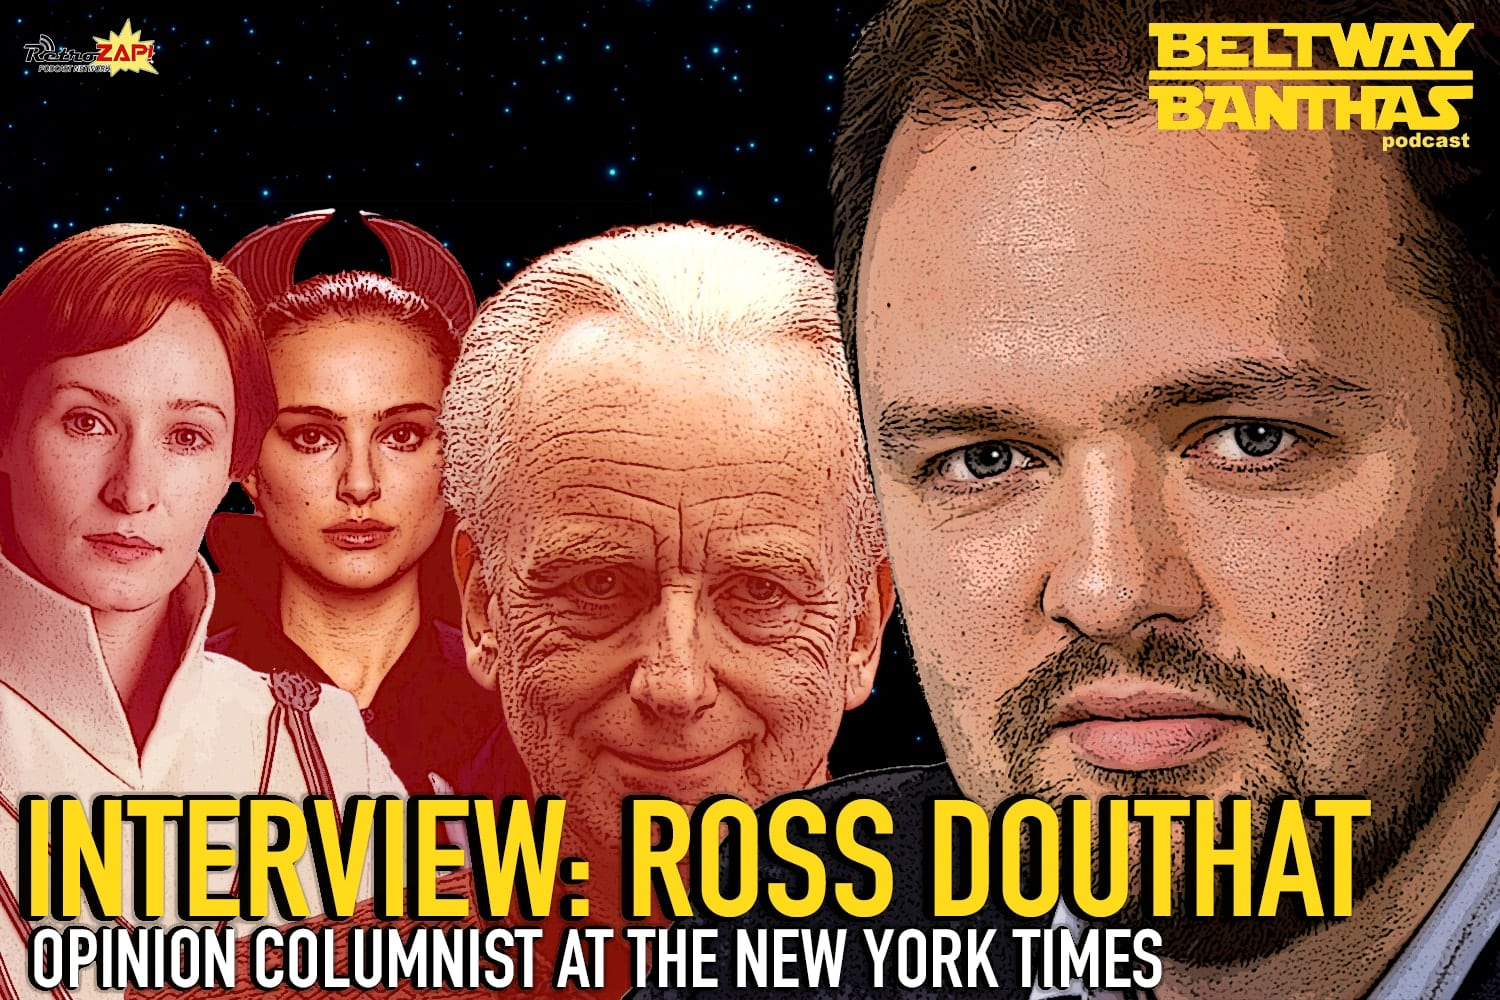 Bethany Banthas Interview: Ross Douthat of The New York Times